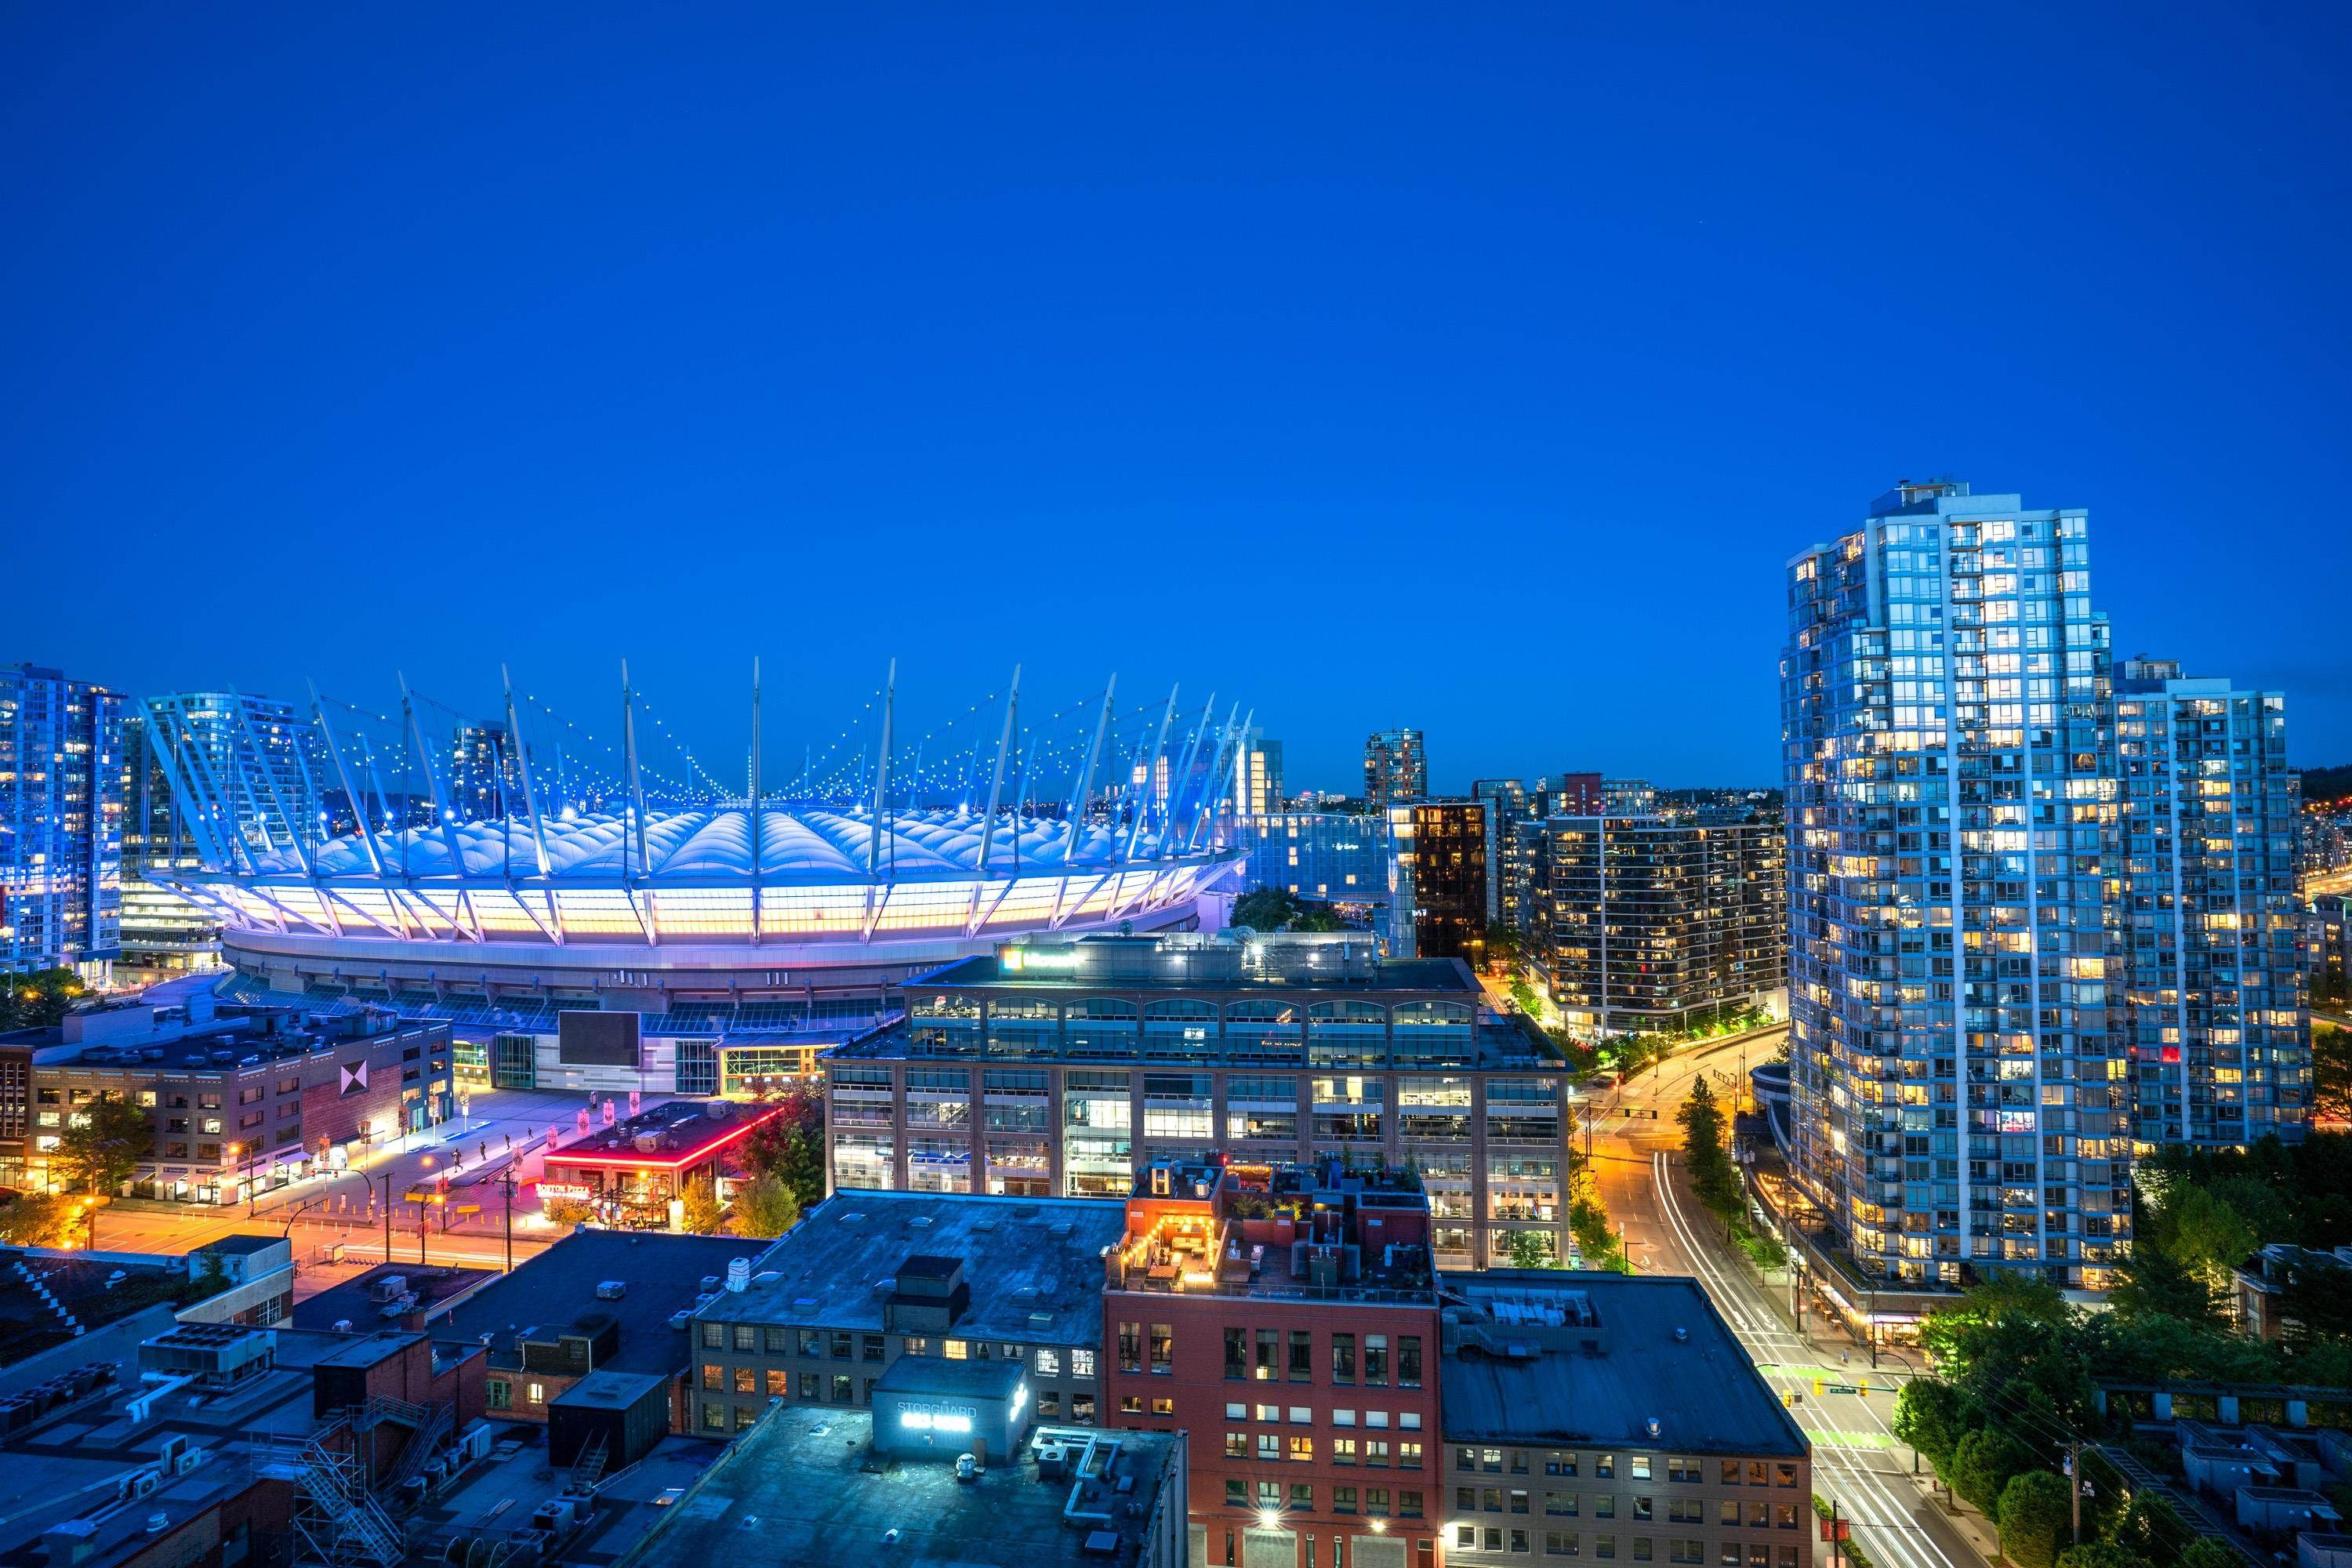 Main Photo: 1702 885 CAMBIE STREET in Vancouver: Yaletown Condo for sale (Vancouver West)  : MLS®# R2615412